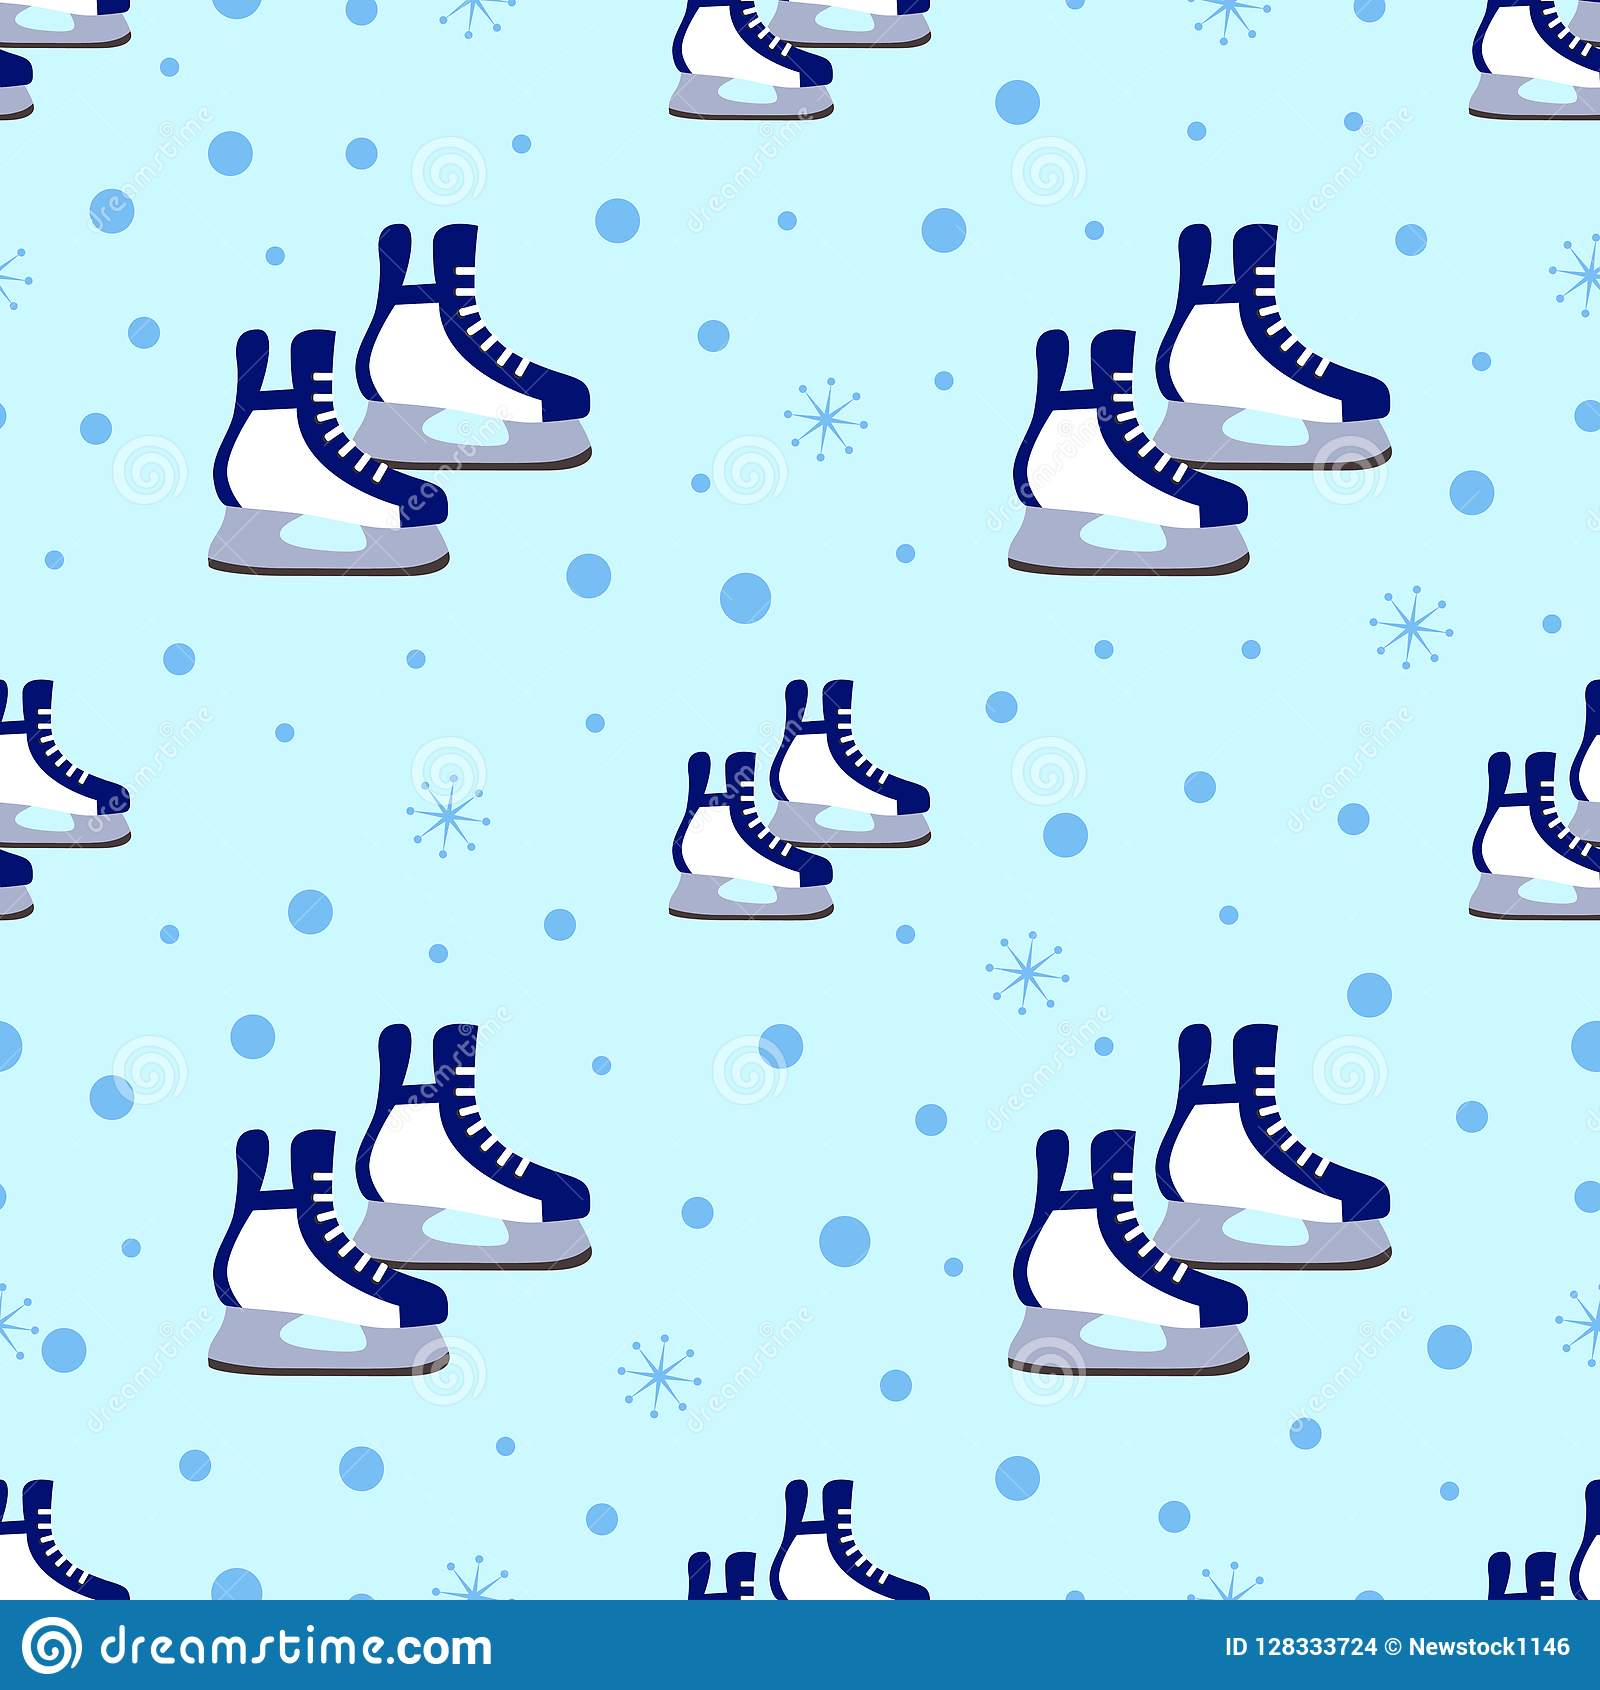 skates seamless pattern winter sports vector illustration ice